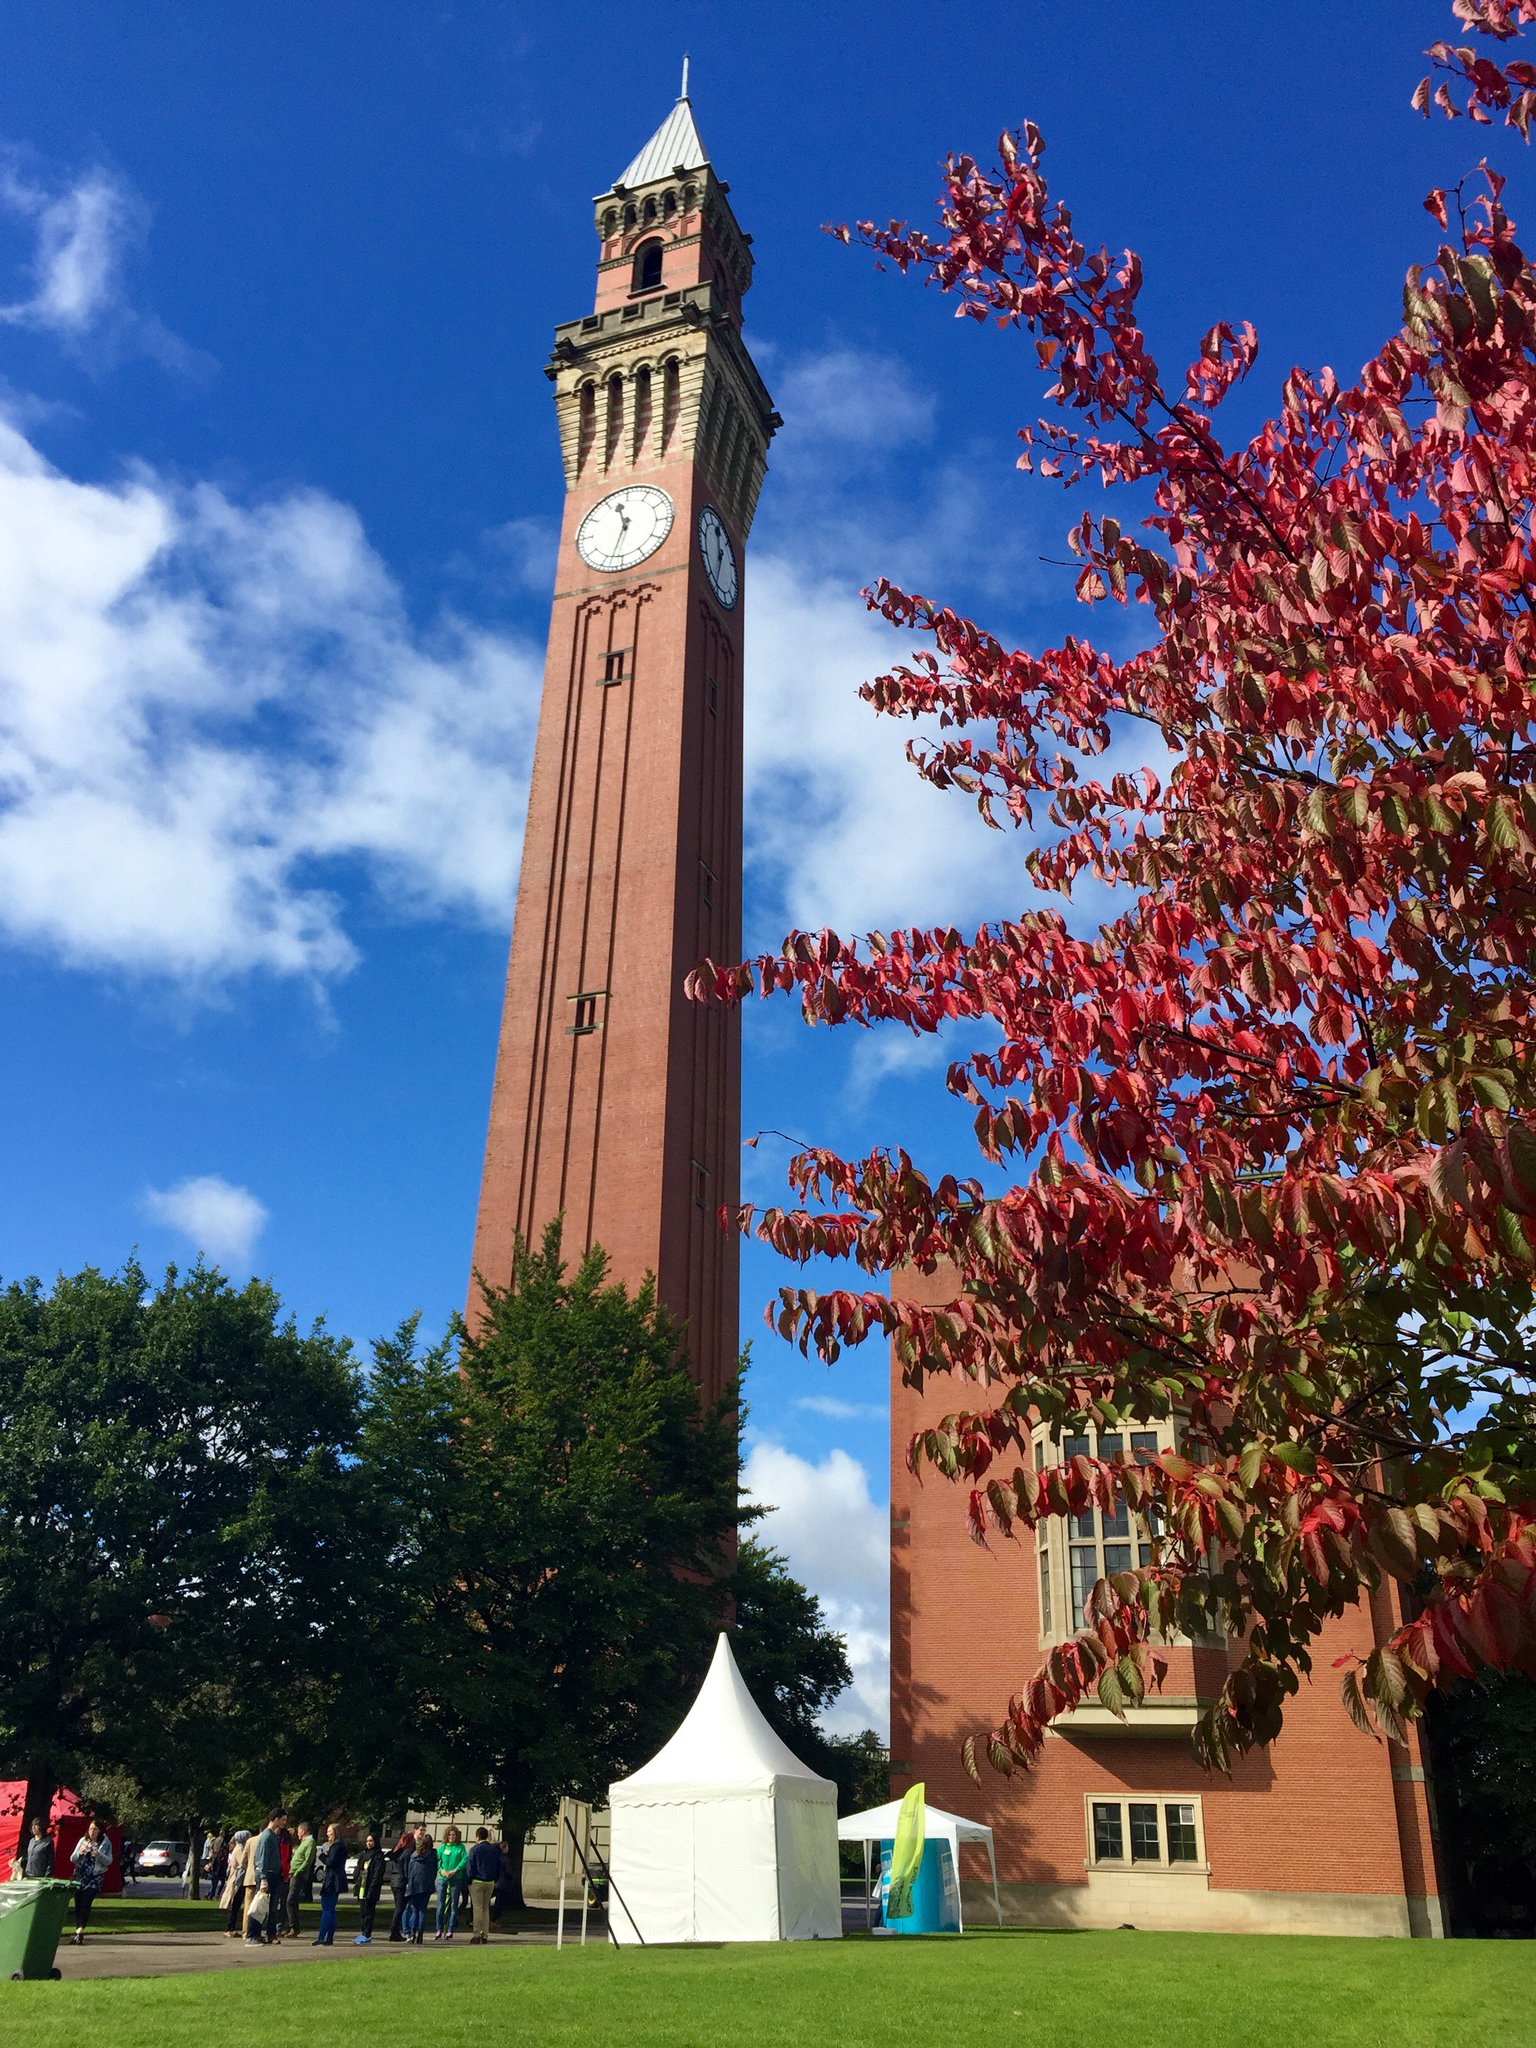 Visiting us tomorrow for our open day? Check out the top things to see on campus. #hellobrum https://t.co/UJvKnACmIi https://t.co/ZNLM7OkNP5